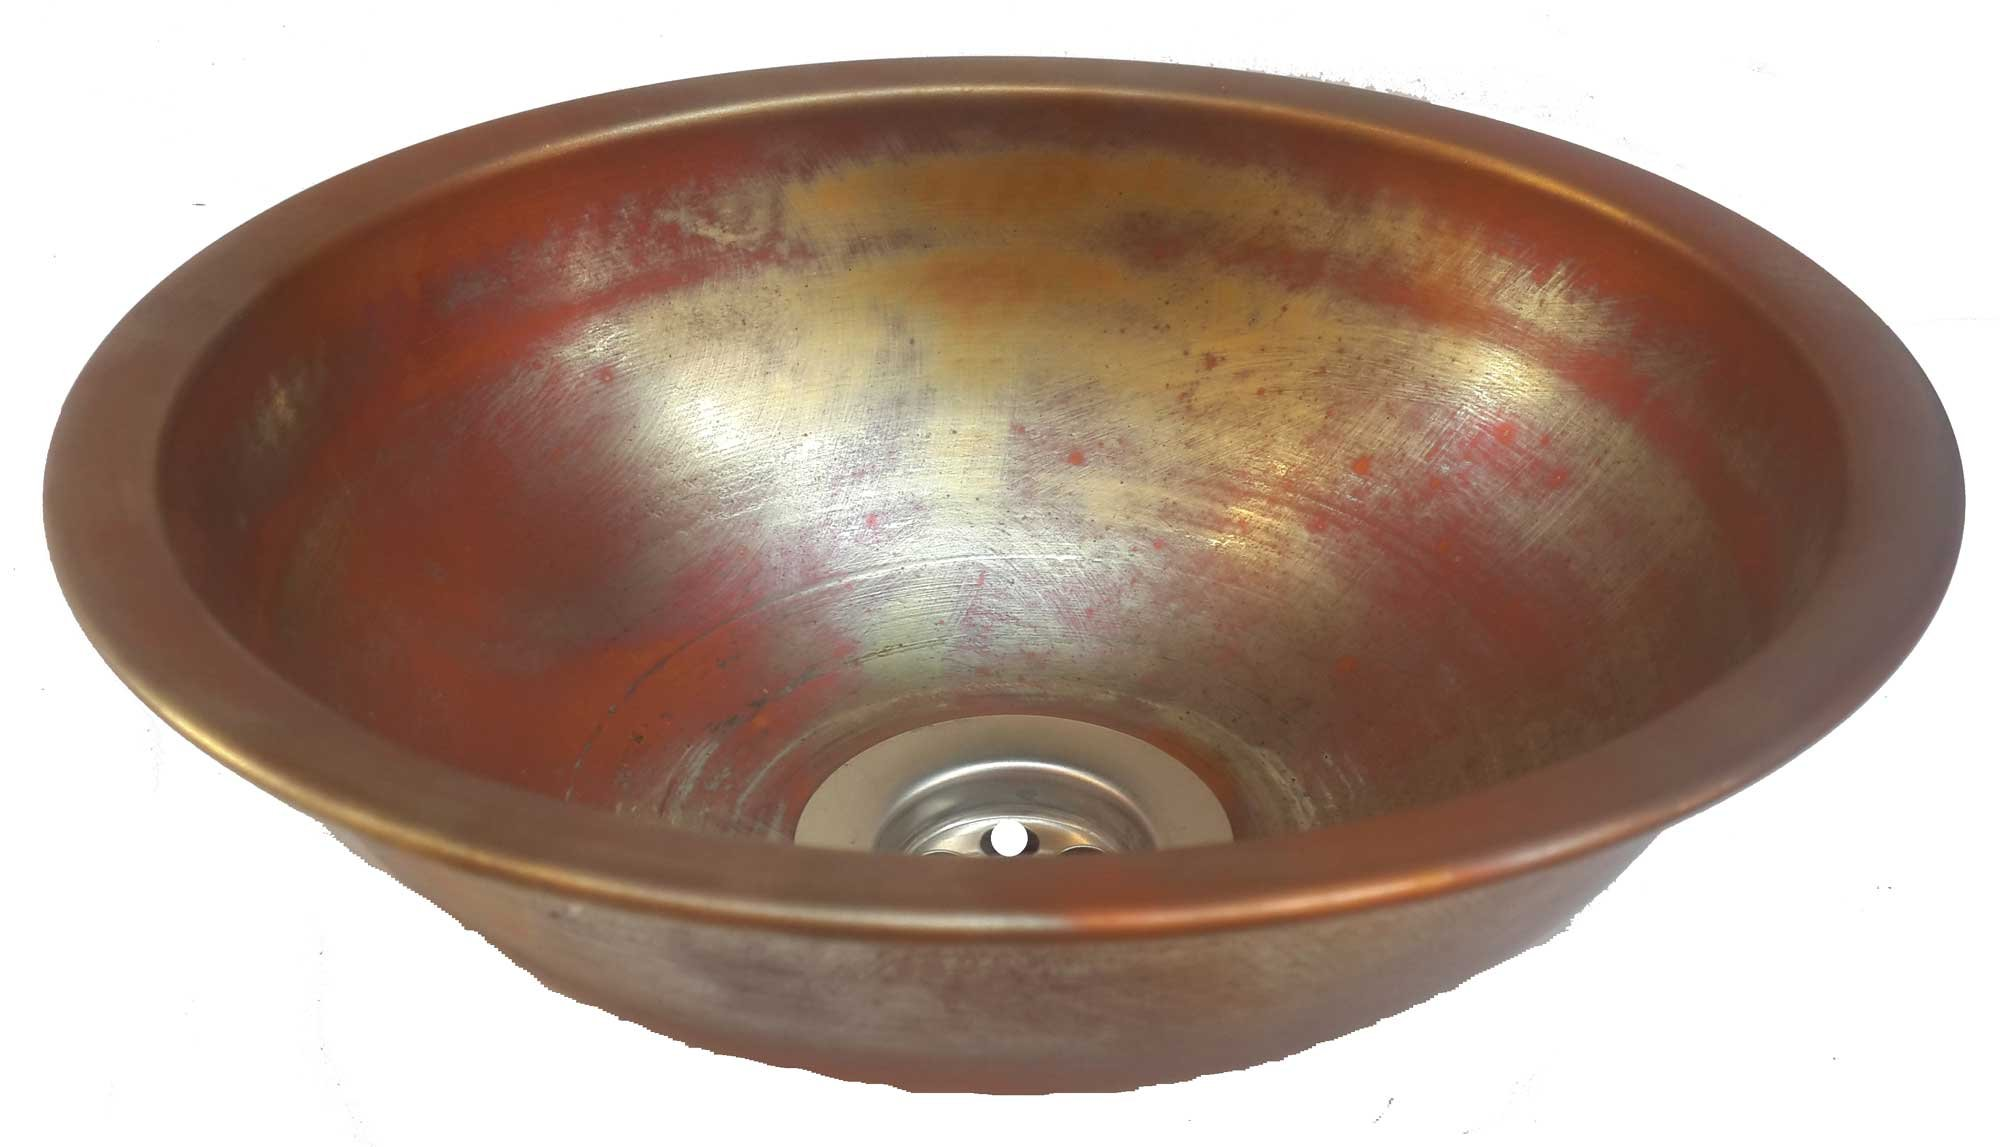 Egypt gift shops Satin Smooth Very Small Compact Copper Bowl Basin Toilet Bathroom Sink Lavatory Cabin Motor Van Caravan Portable Home Renovation by Egypt gift shops (Image #8)